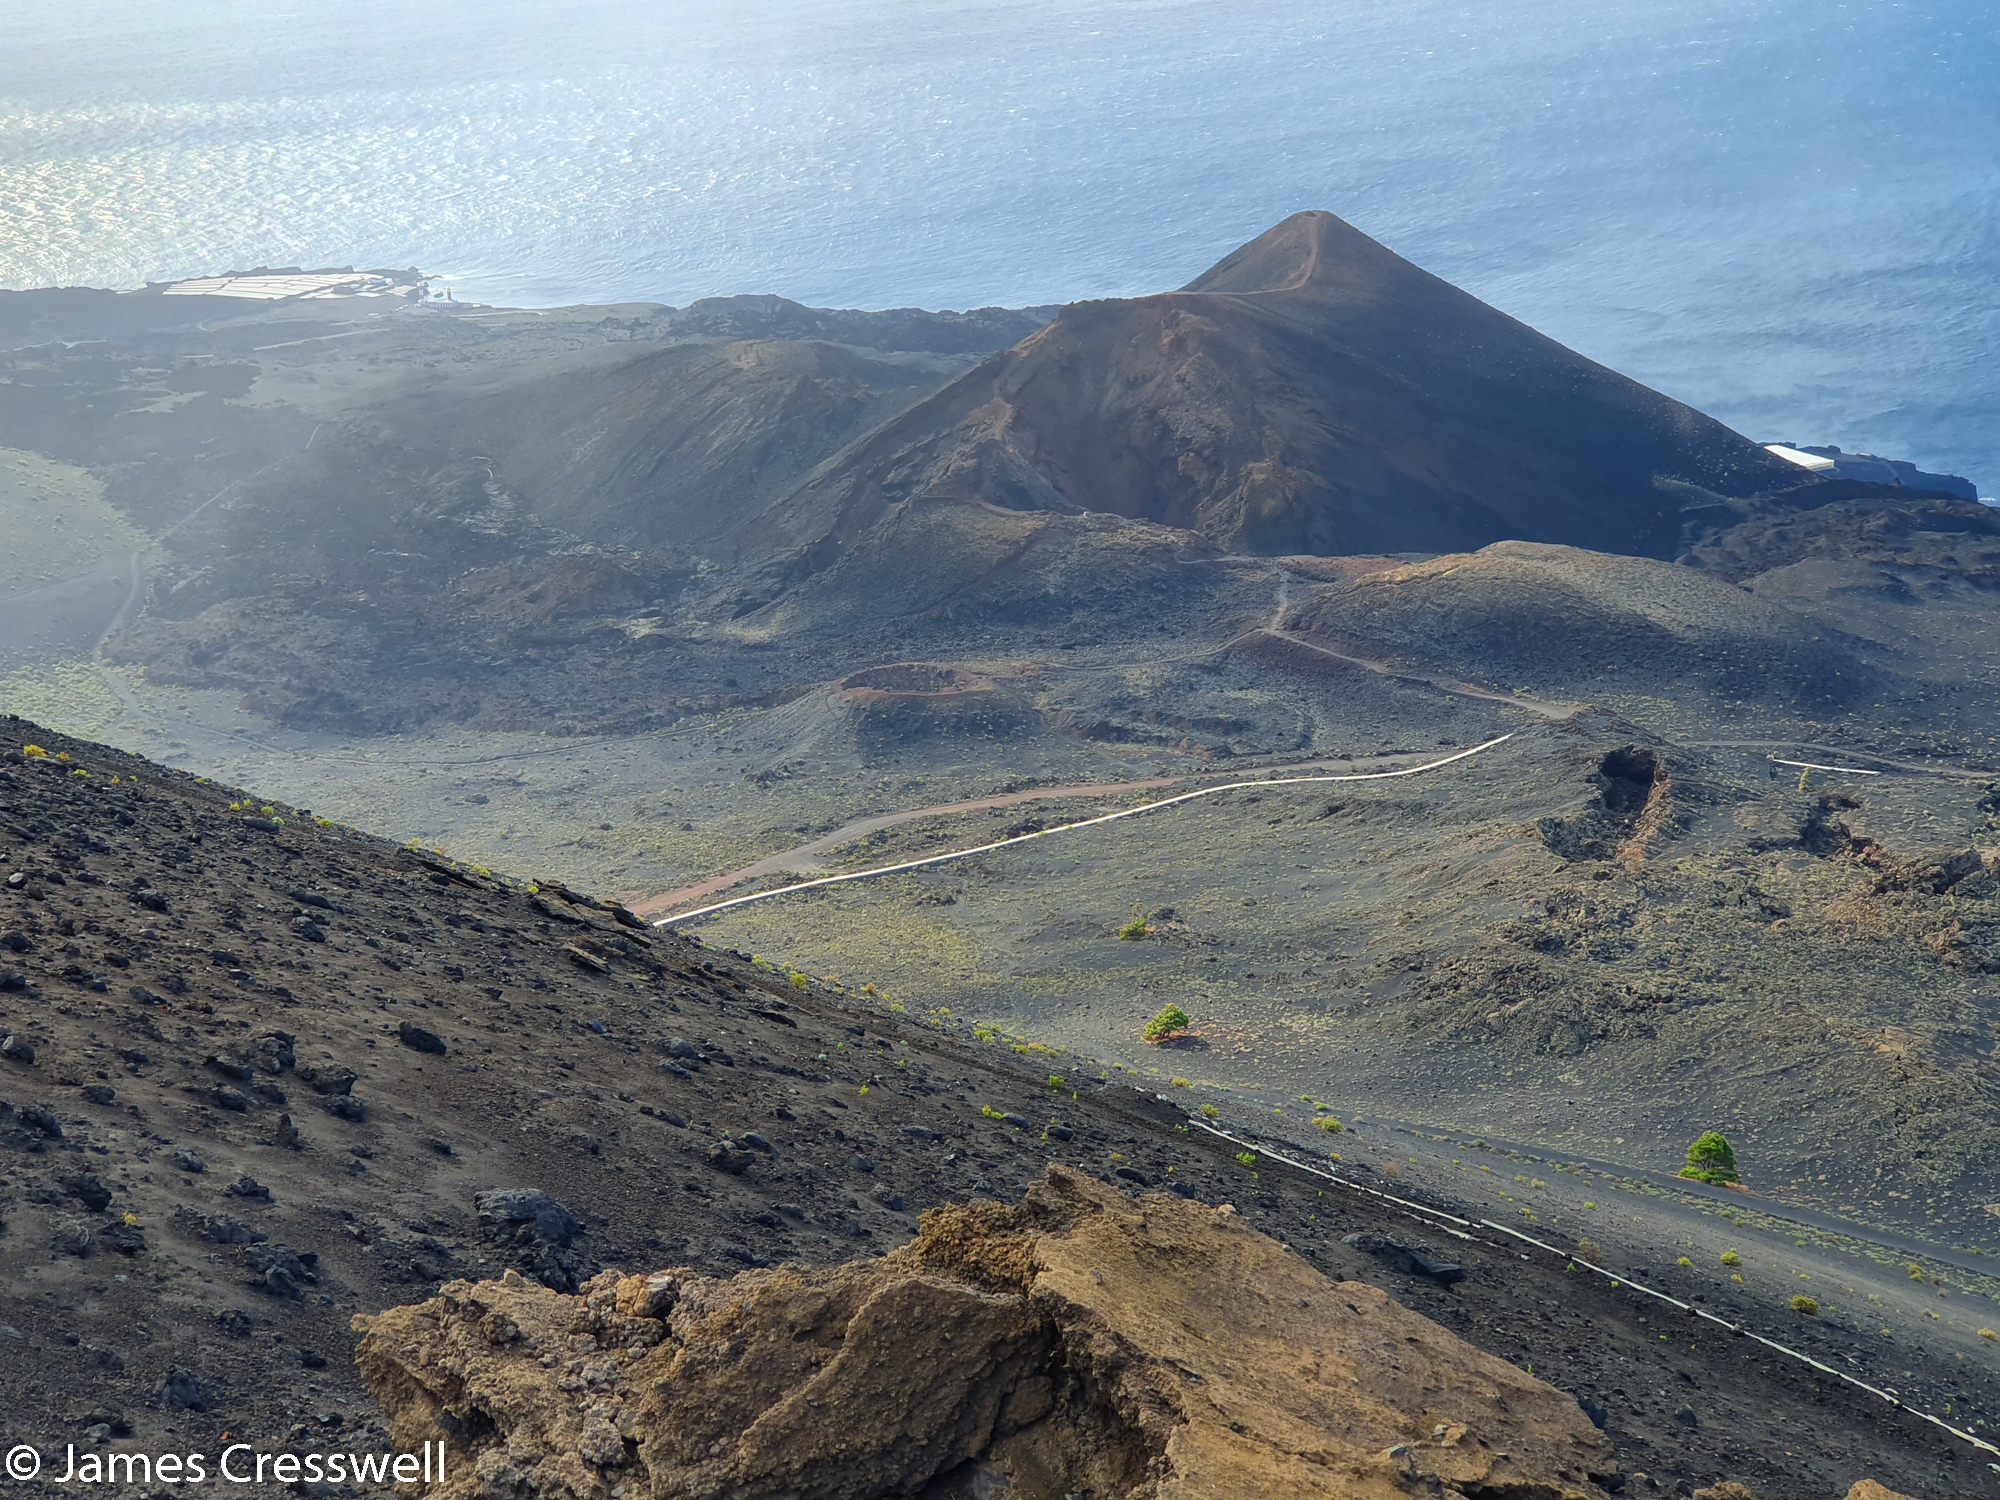 View of the sea with volcanic crater in the foreground